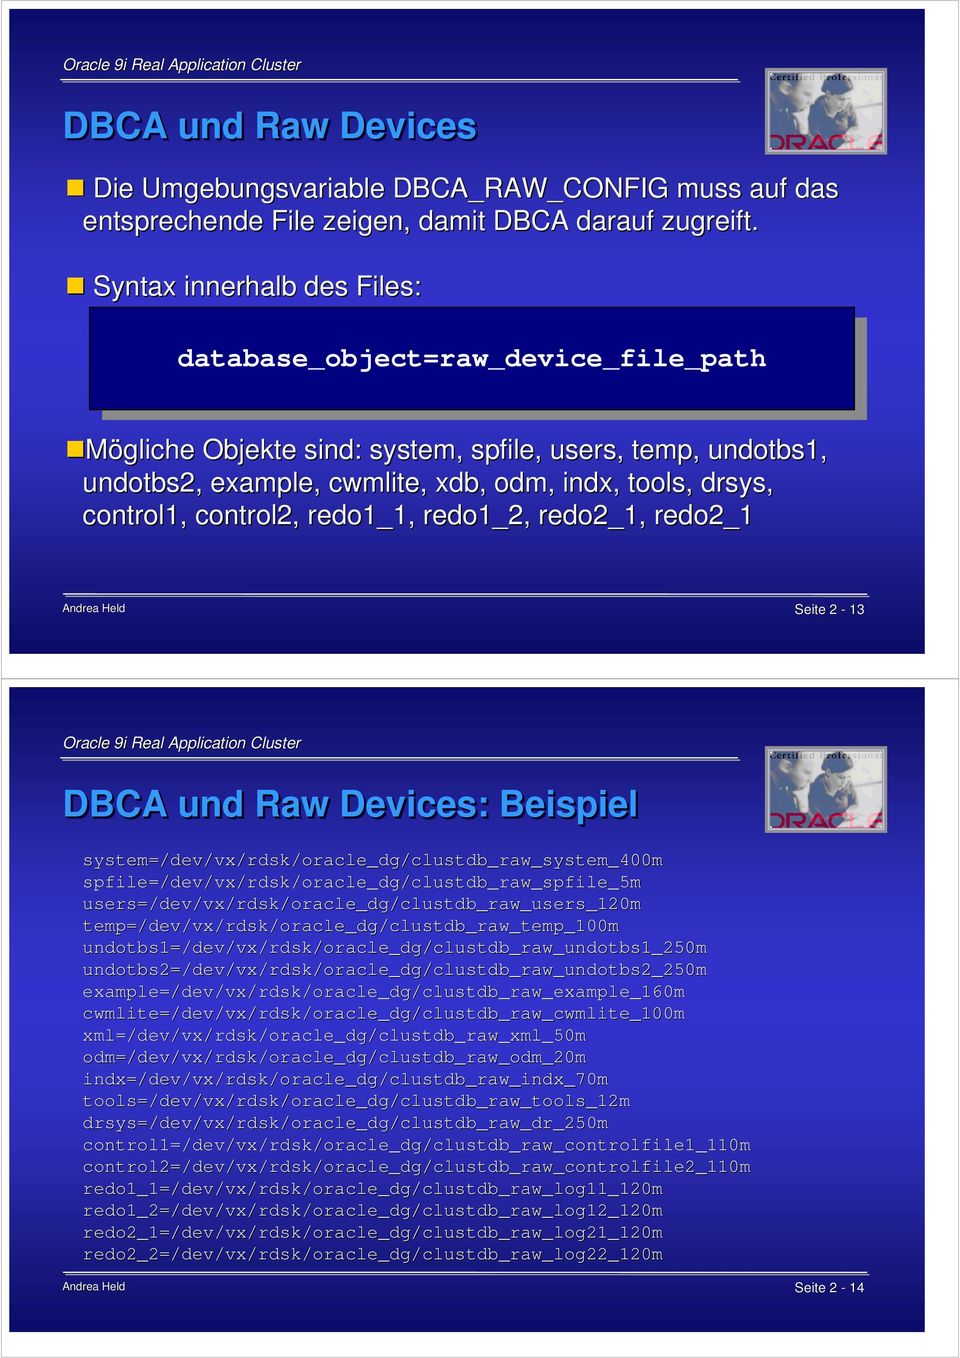 control2, redo1_1, redo1_2, redo2_1, redo2_1 Seite 2-13 DBCA und Raw Devices: Beispiel system=/dev dev/vx/rdsk/oracle_dg/clustdb_raw_system_400m spfile=/ =/dev/vx/rdsk/oracle_dg/clustdb_raw_spfile_5m